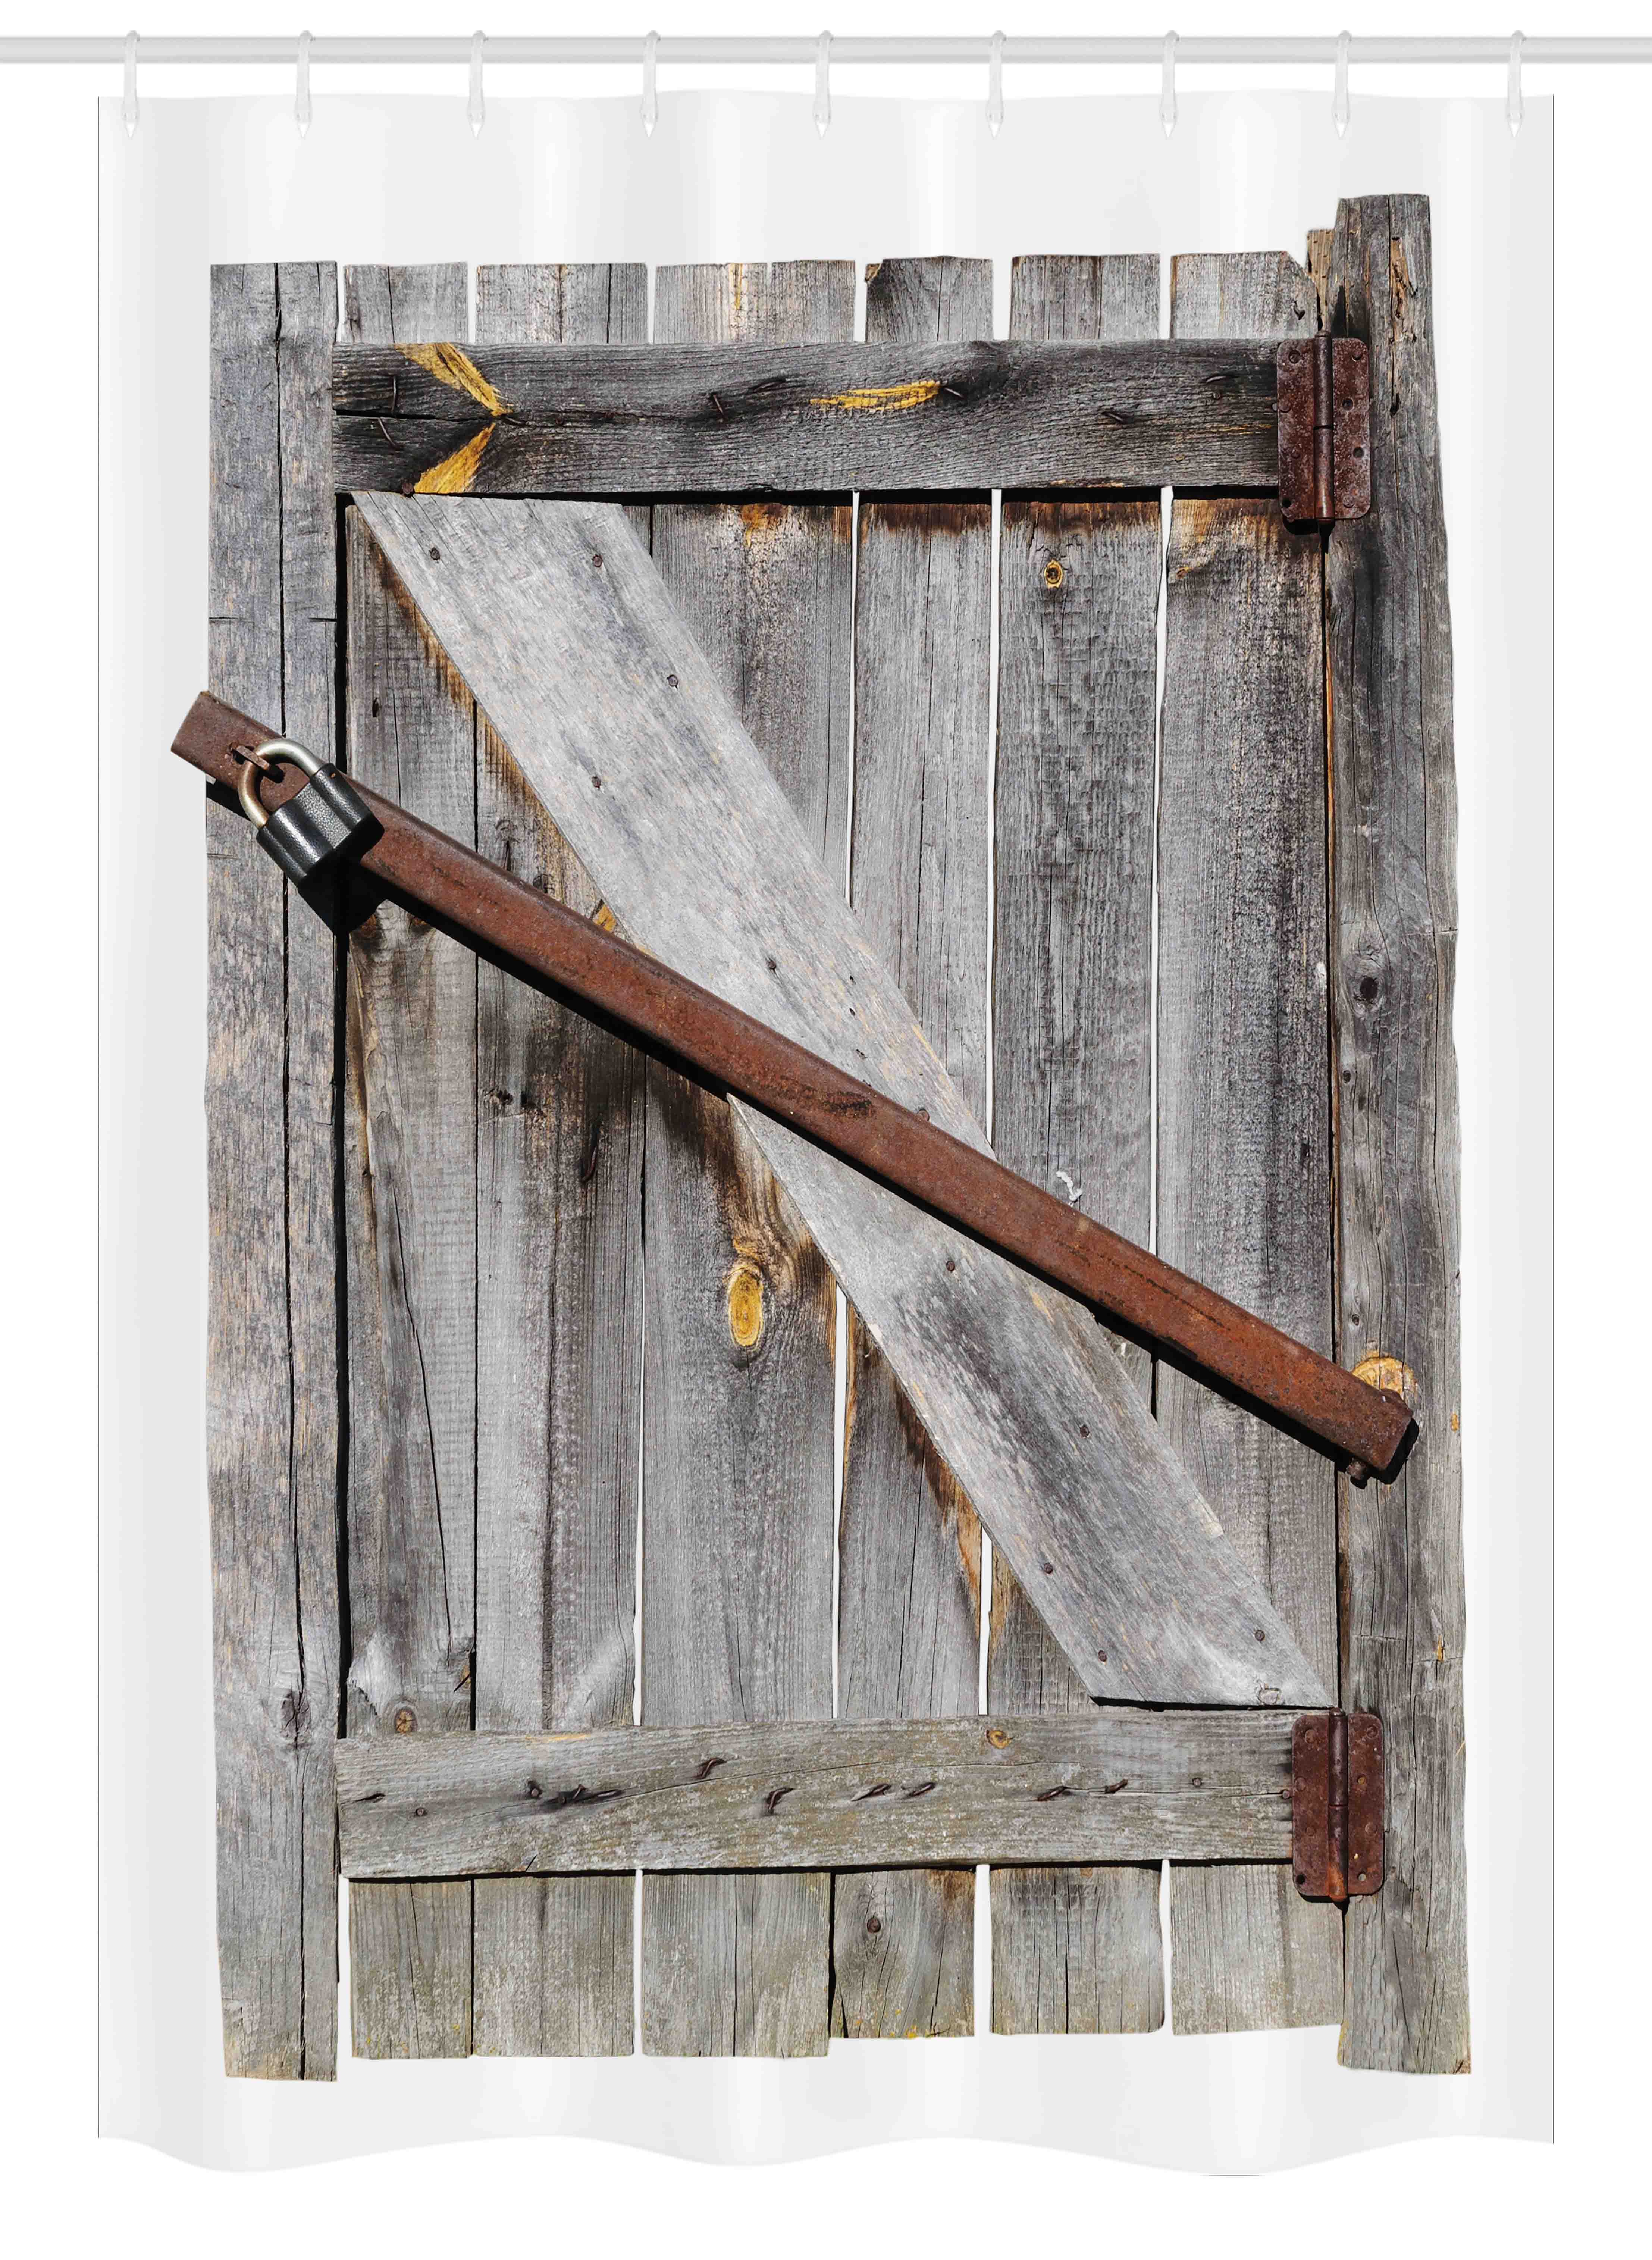 rustic stall shower curtain aged wood barn door with rusty crossed locks abandoned ancient western farmhouse design fabric bathroom set with hooks